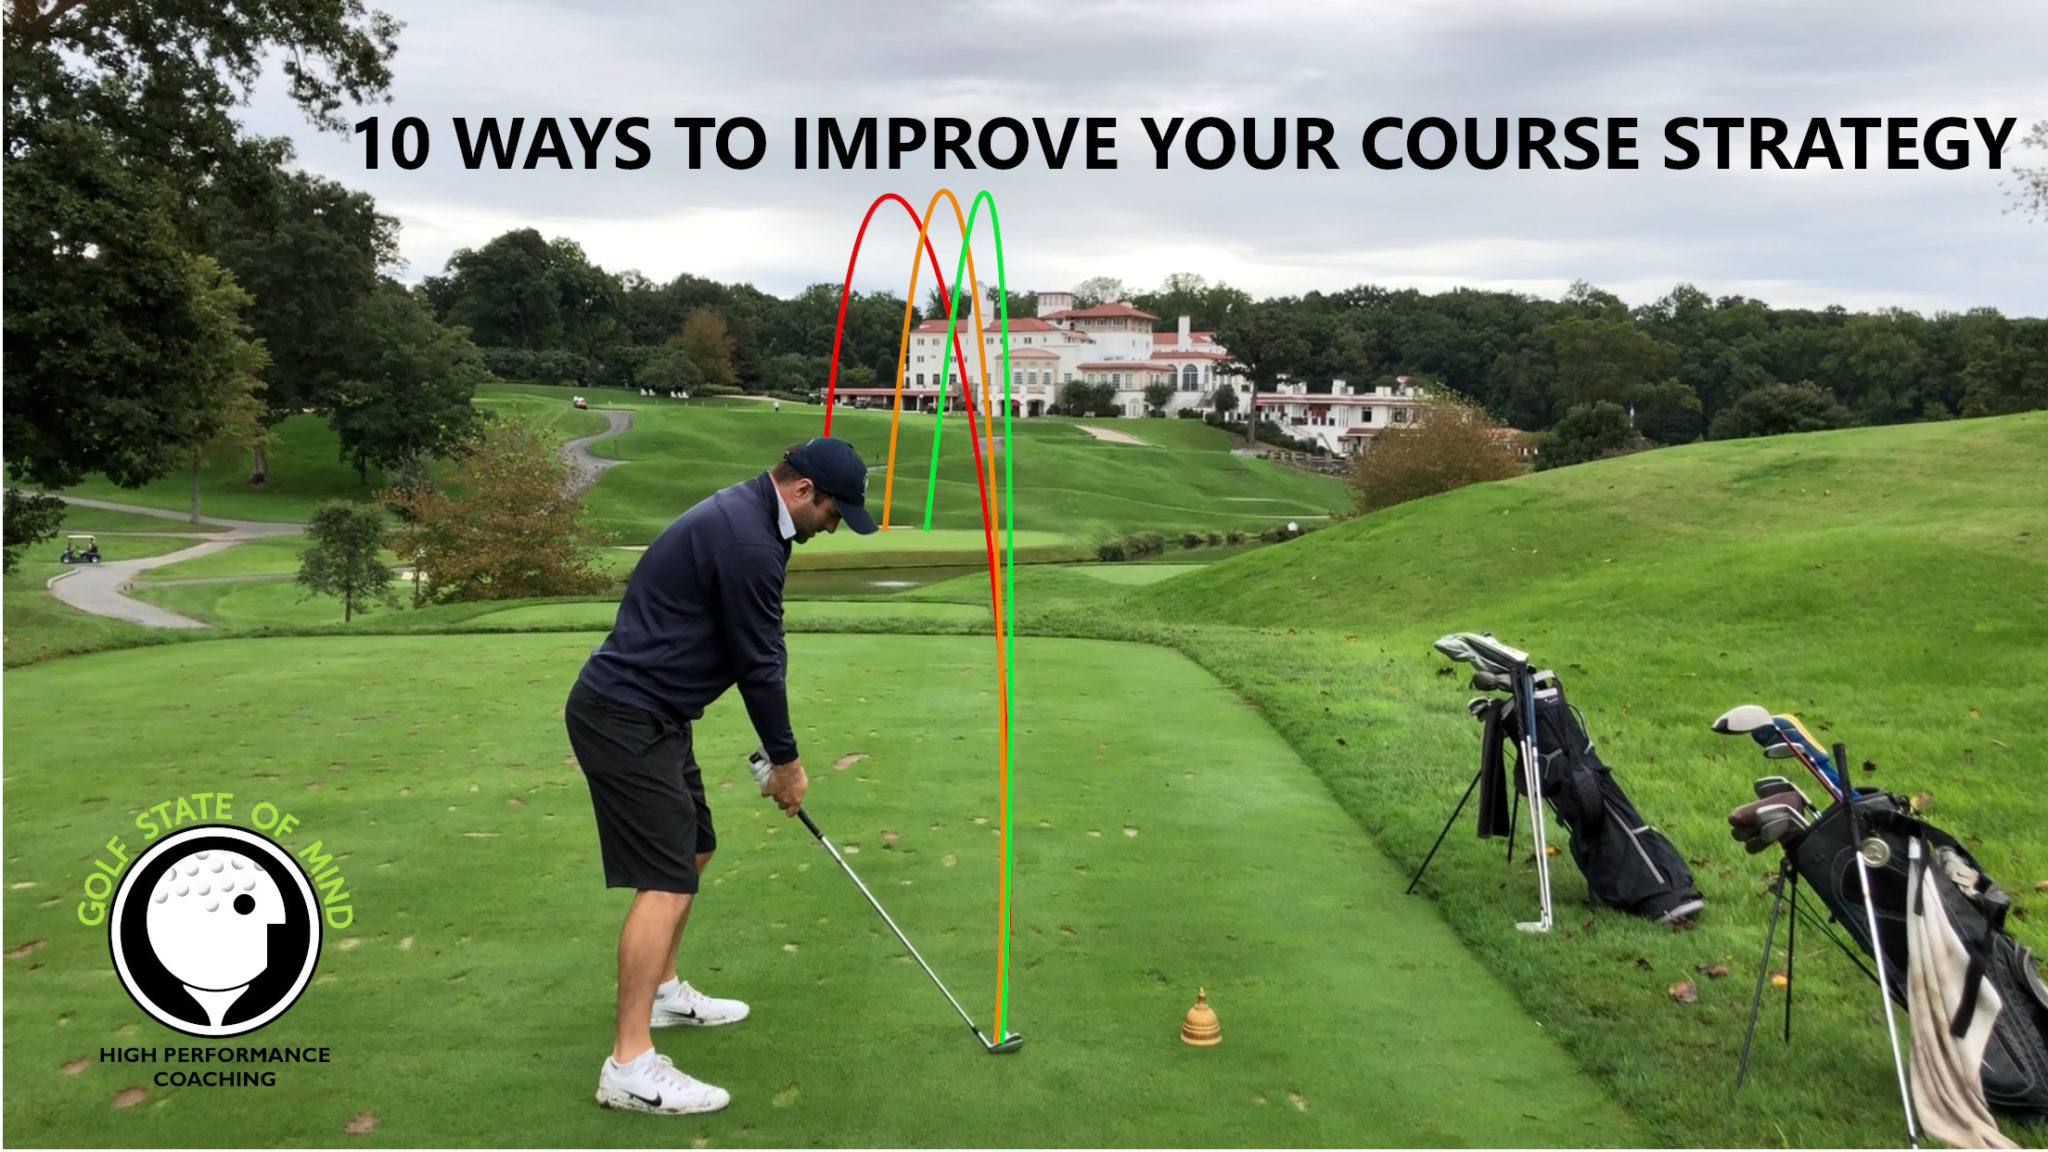 10 Ways To Improve Your Course Strategy And Lower Your Scoring Average